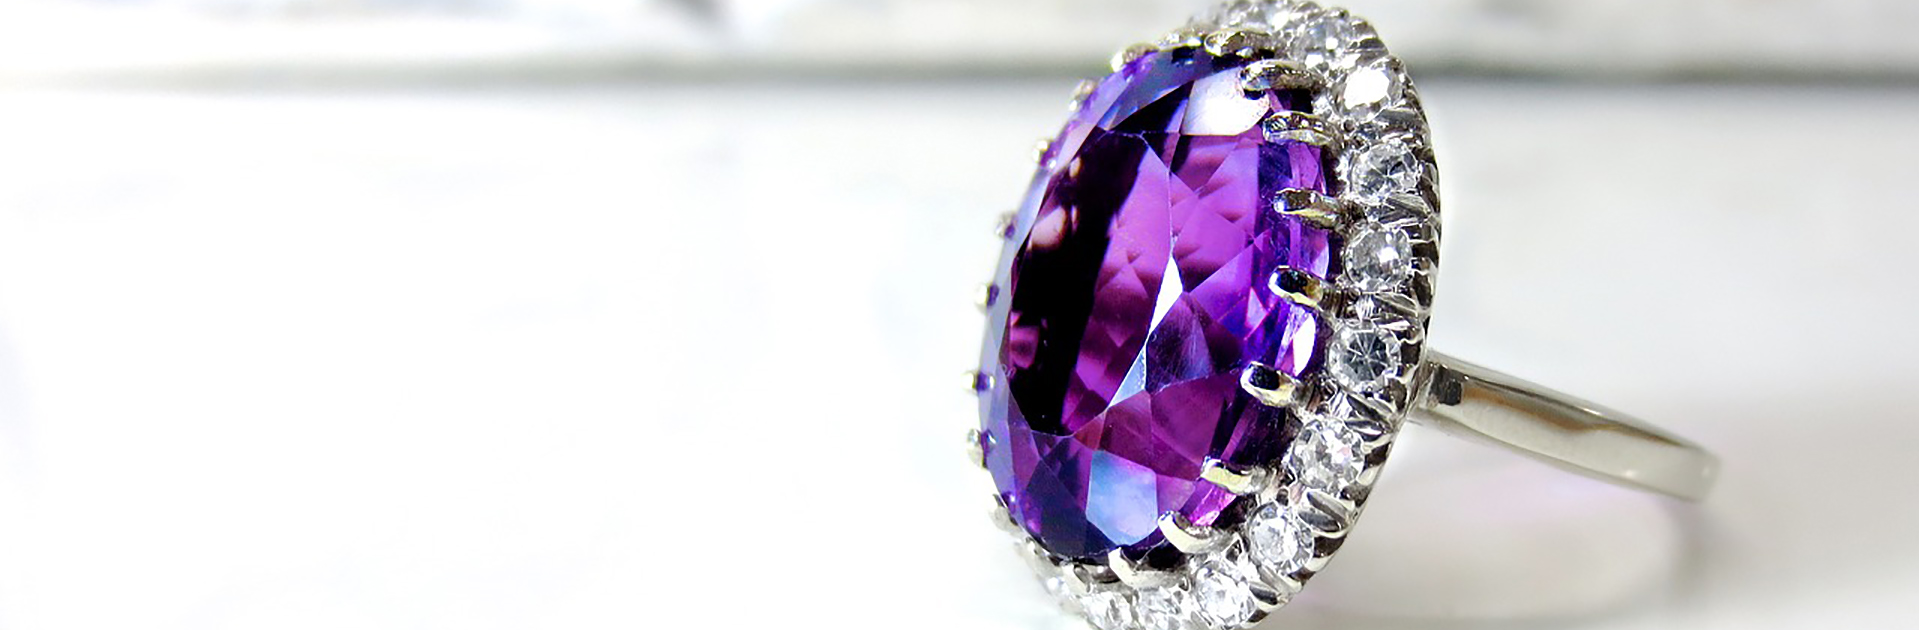 How often should I get the prongs checked on my jewelry?